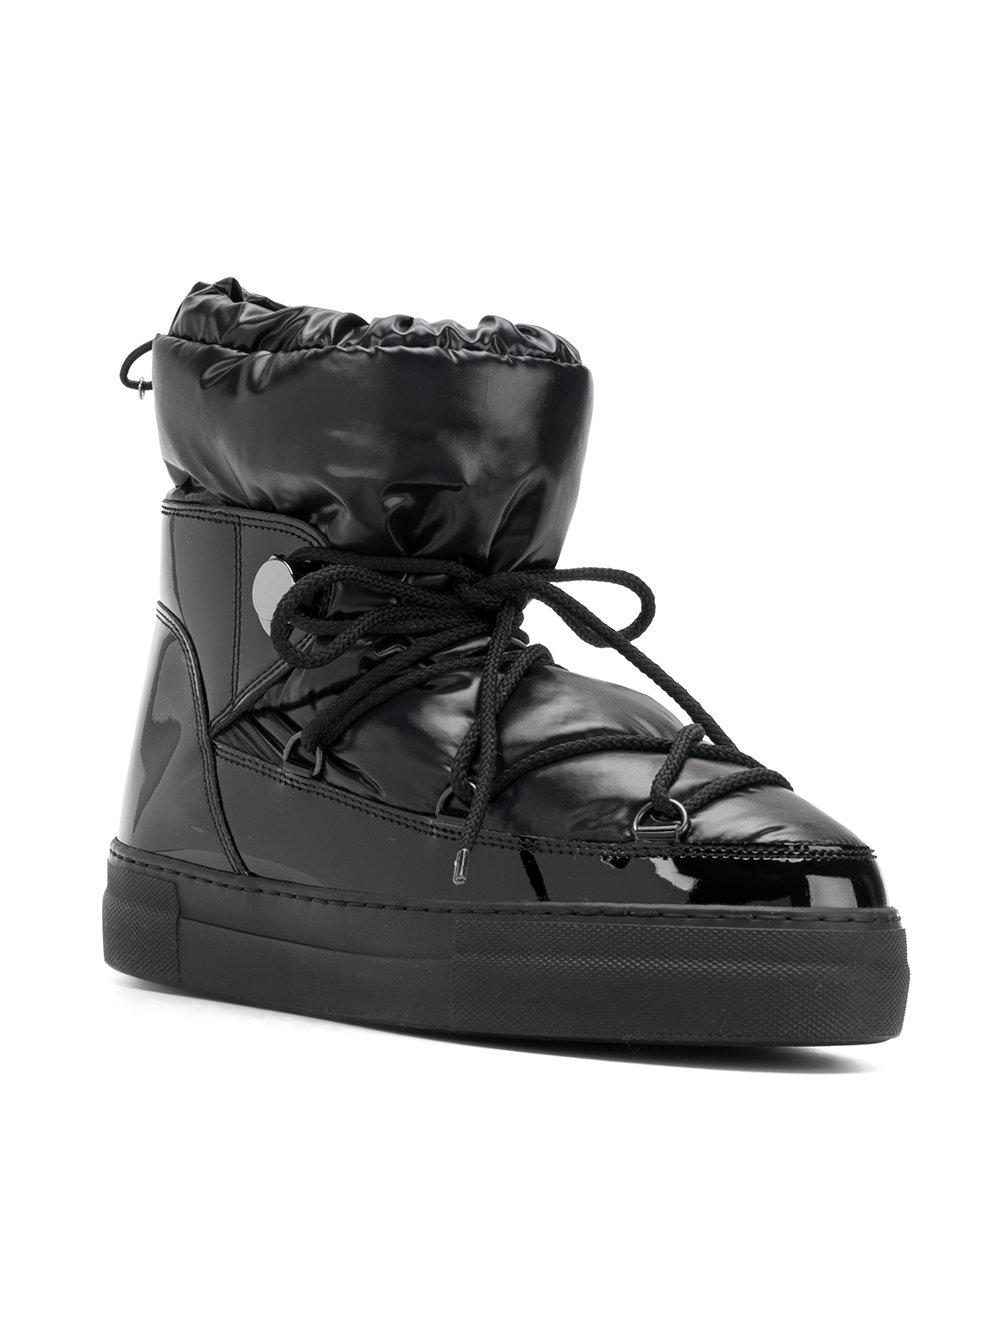 Moncler Leather Padded Snow Boots in Black